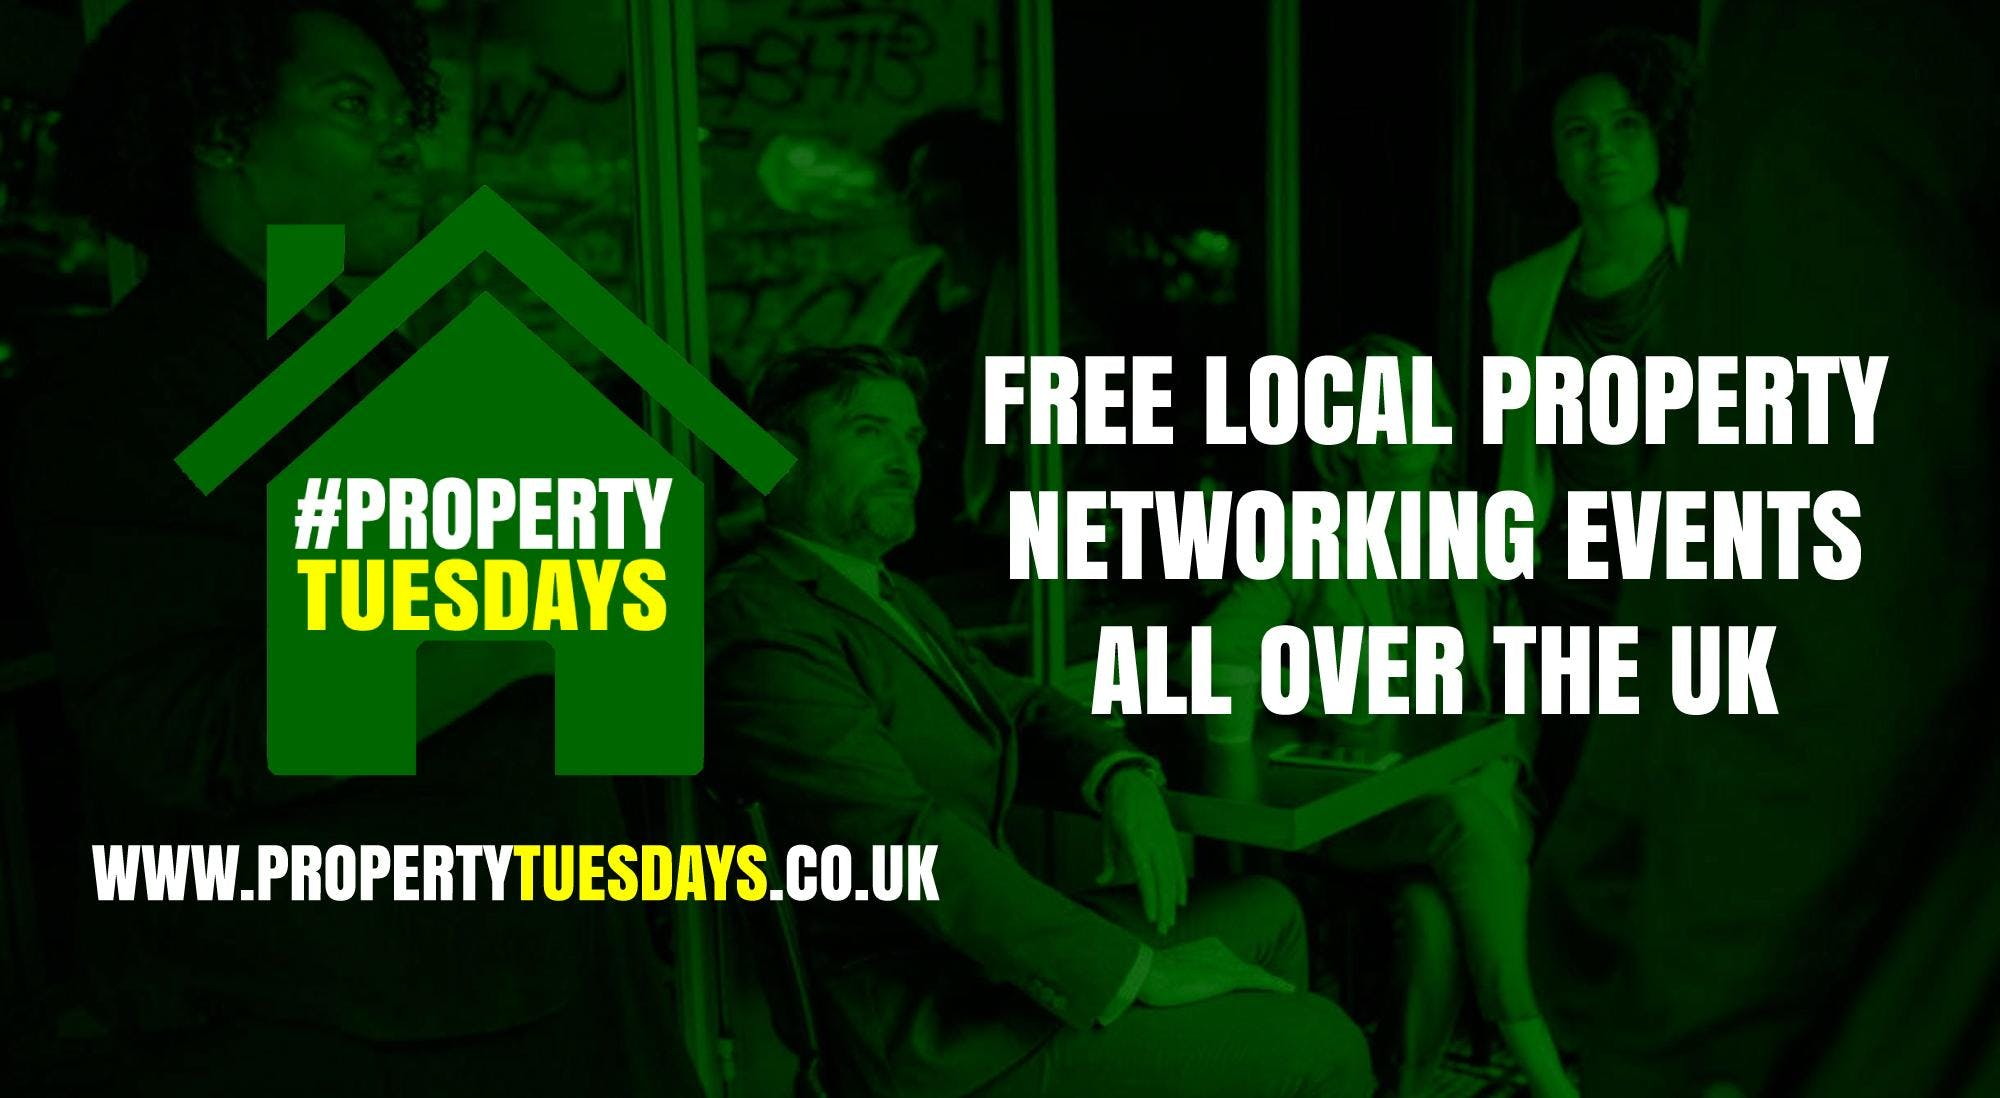 Property Tuesdays! Free property networking event in Brierley Hill